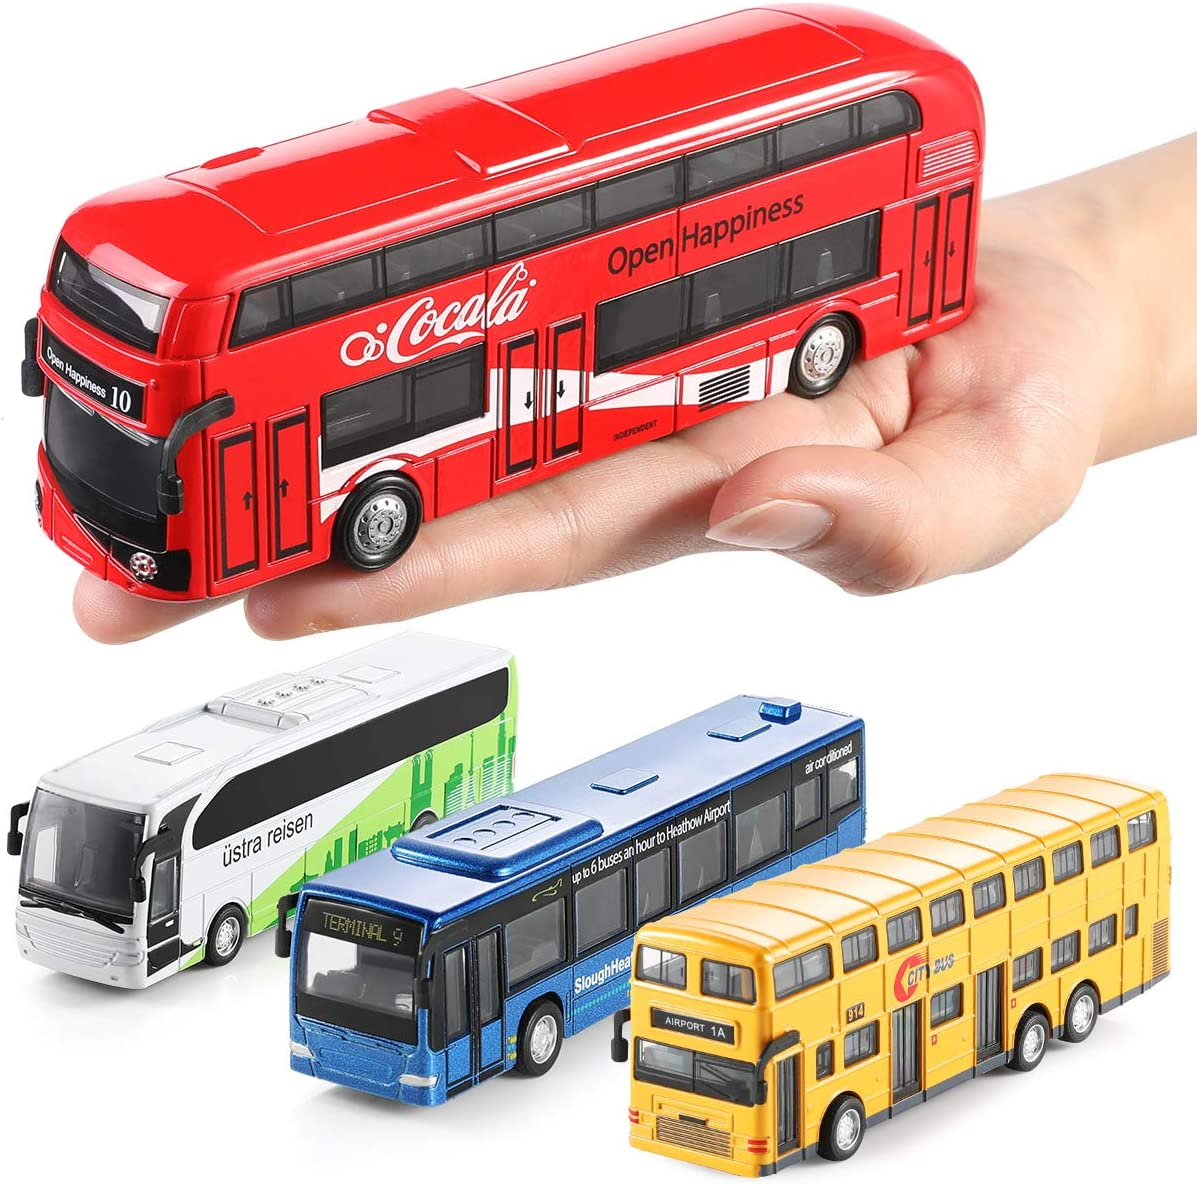 Geyiie Pull Back Bus Die cast Metal Toys Cars Set of 4 Colors Push Go Friction Powered Cars Mini Bus Coach Collection Model Gifts for Toddler Boys